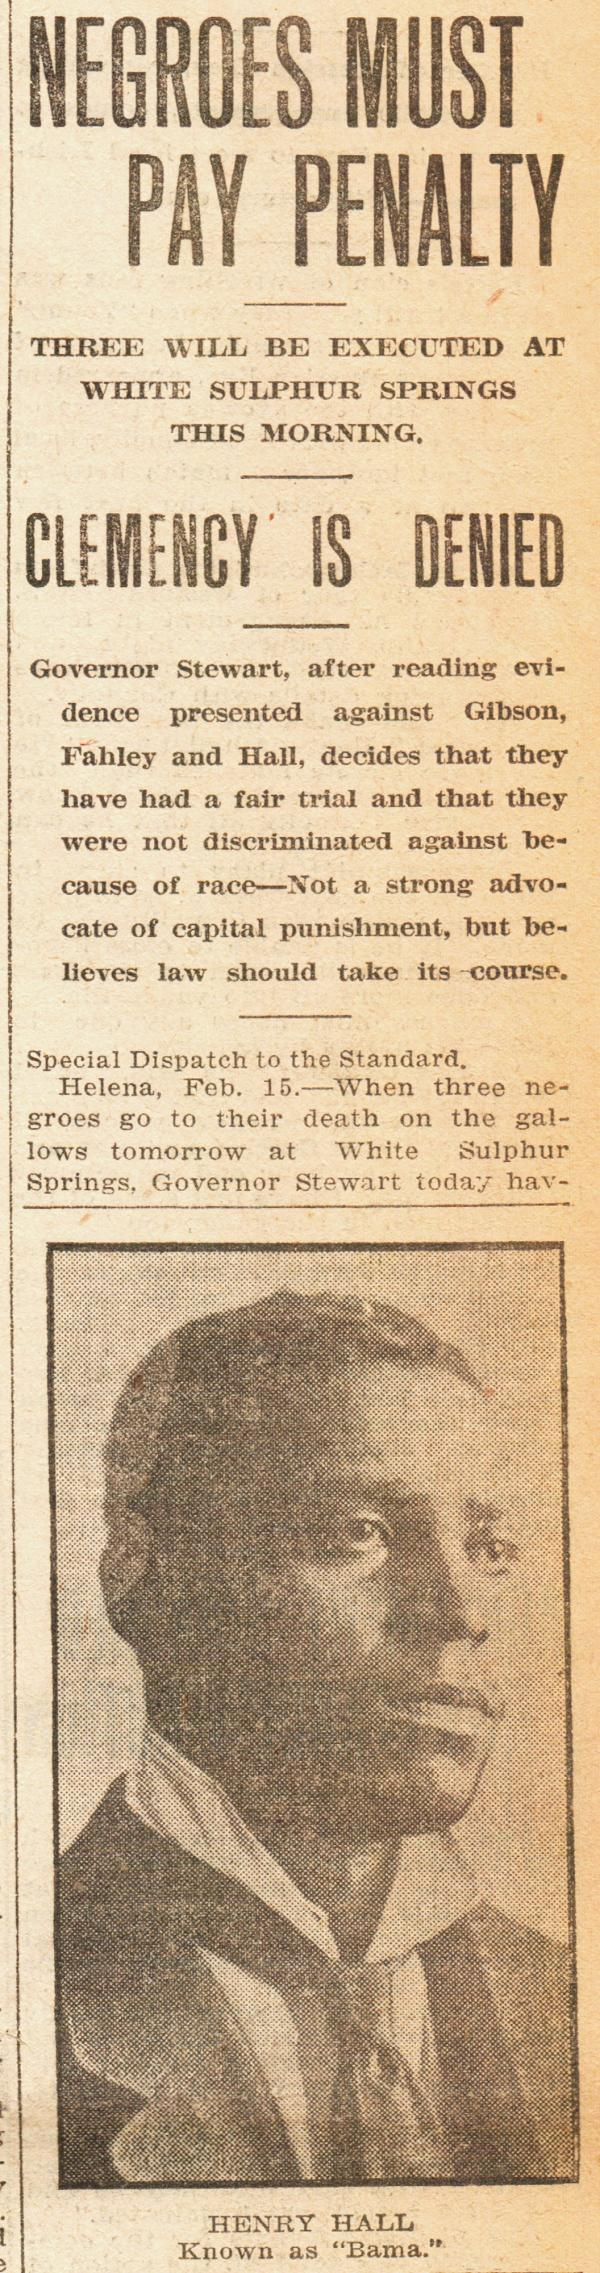 "The Race Card Project found a 1917 article from the <em>Anaconda Standard </em>detailing the governor's reasons for denying clemency to the three men. Read the <a href=""http://www.npr.org/assets/news/2014/07/race-card-zachary-newspaper.pdf"">full article here</a>."